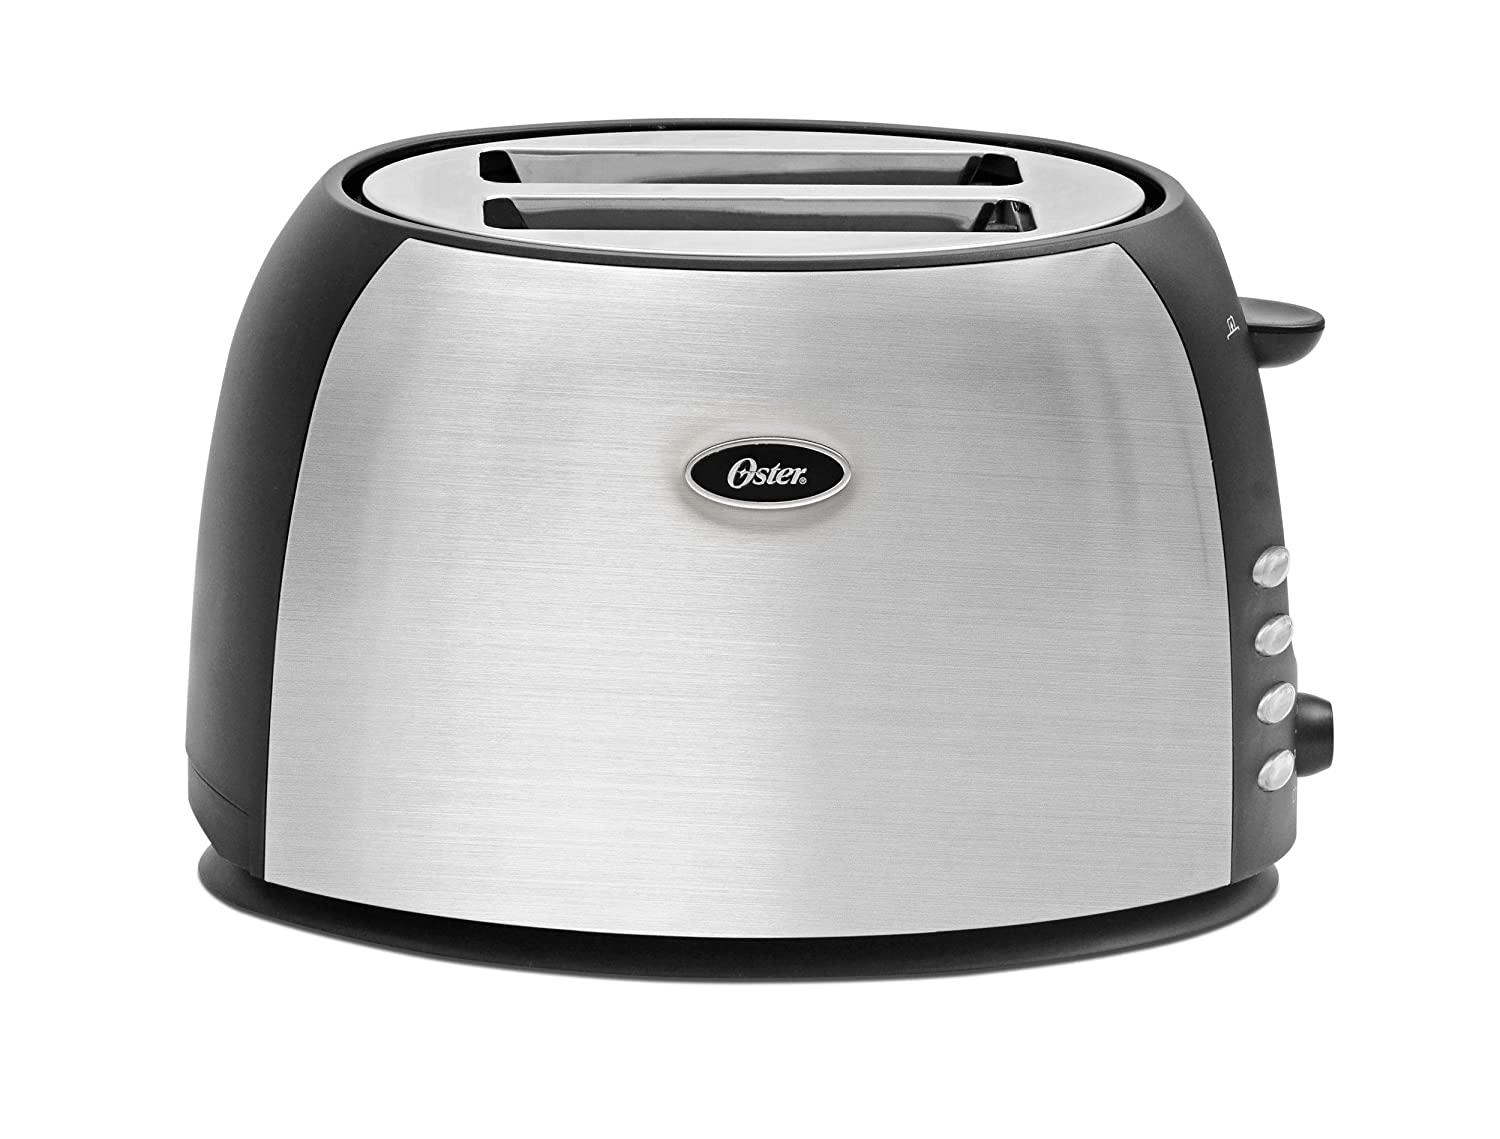 Oster 2-Slice Toaster, Brushed Stainless Steel (TSSTJC5BBK)